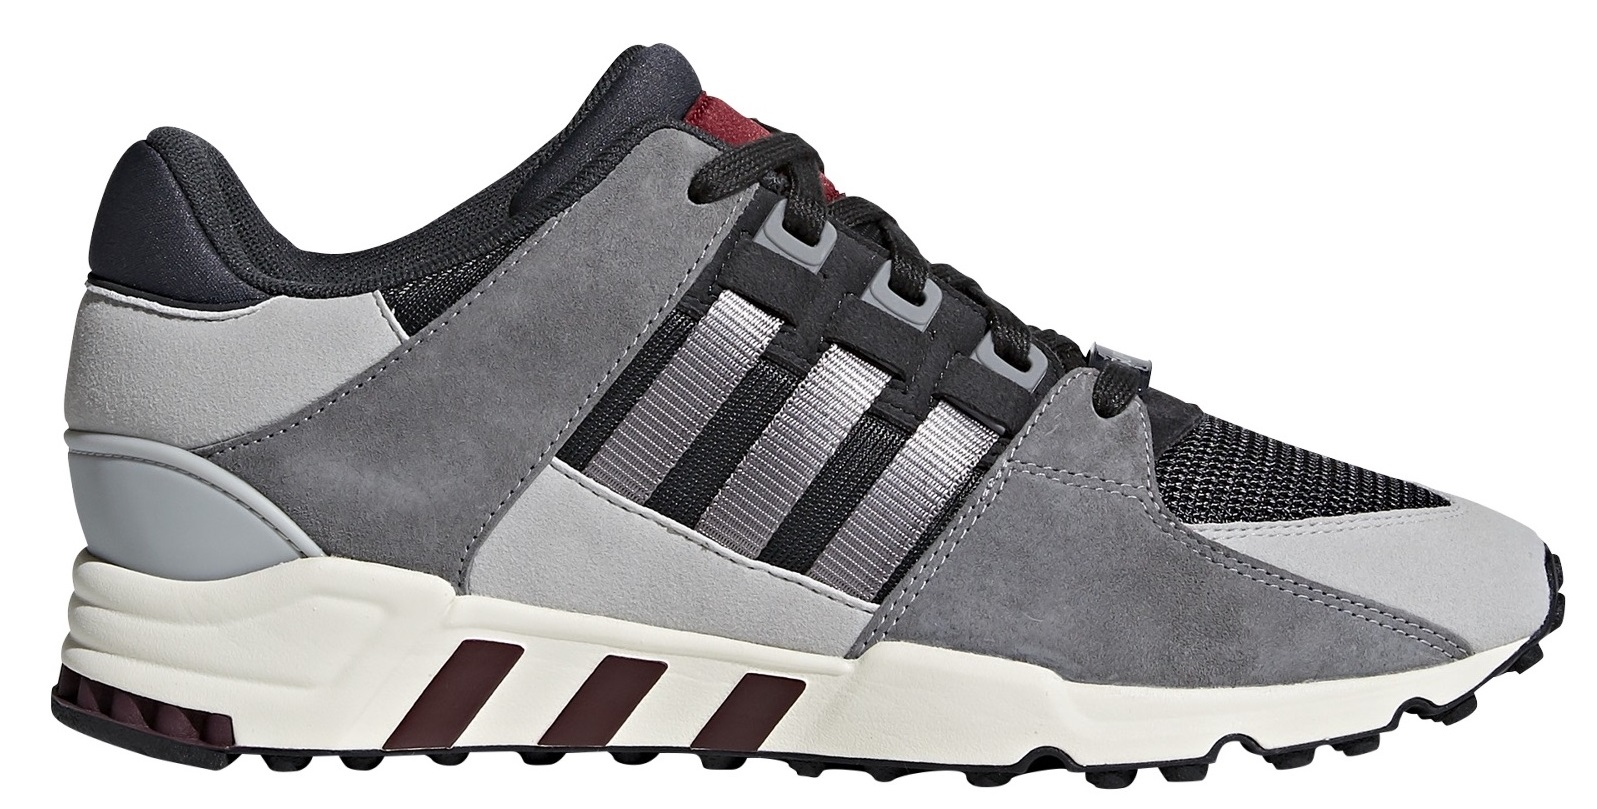 promo code d5f48 b0129 Shoe Men EQT Support RF colore Grey Black - Adidas Originals - SportIT.com